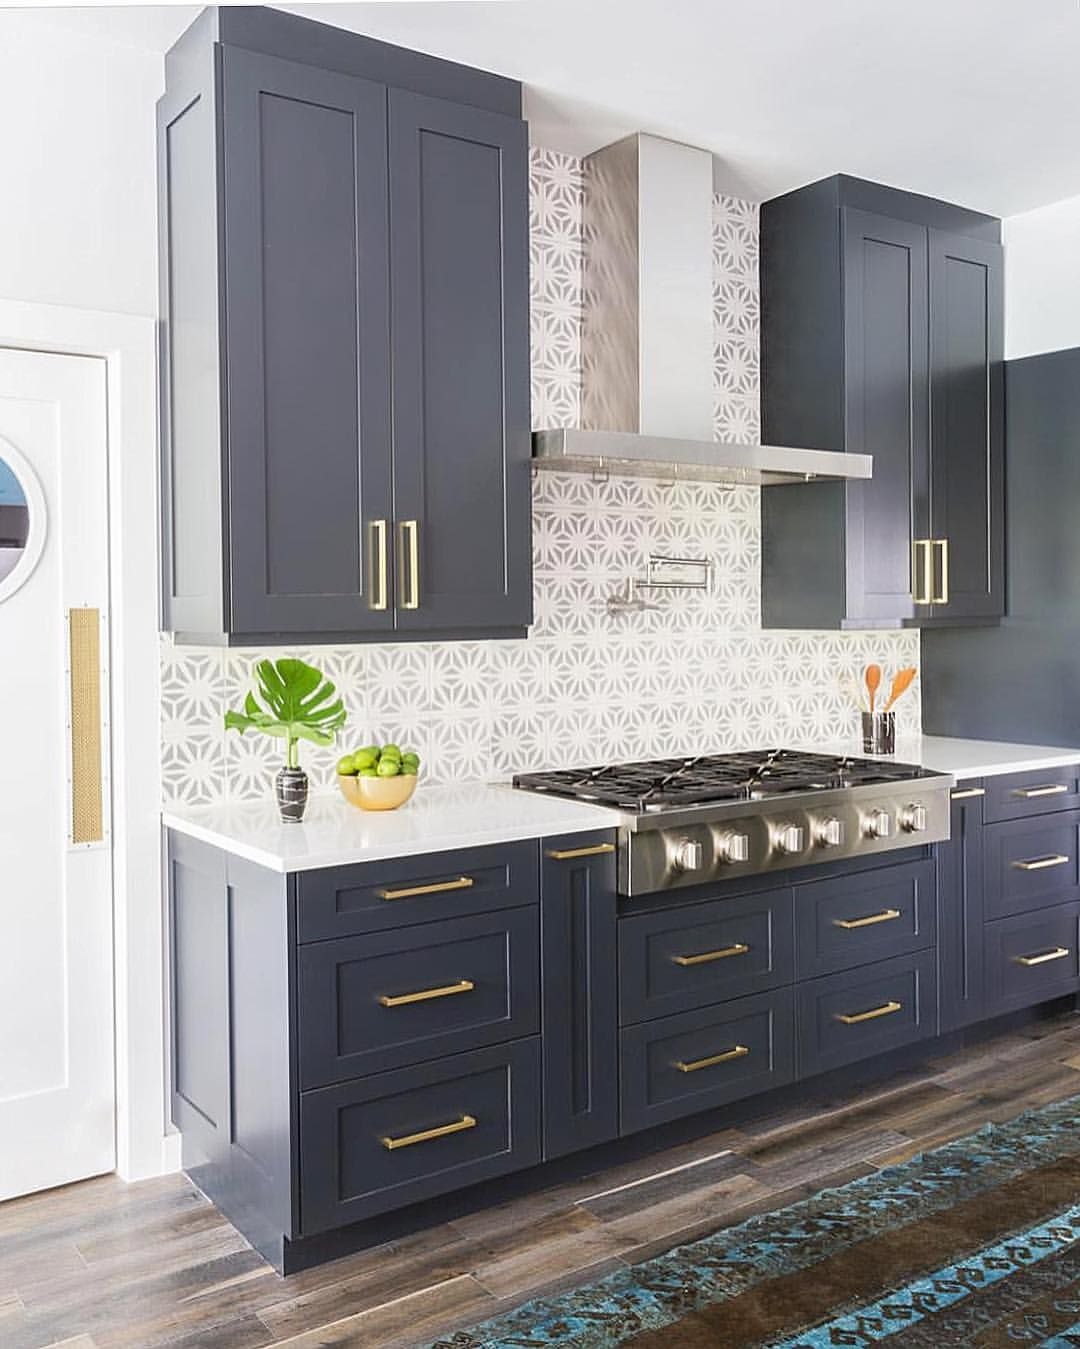 Navy blue cabinets stone textiles kitchen kitchen for Navy blue kitchen cabinets